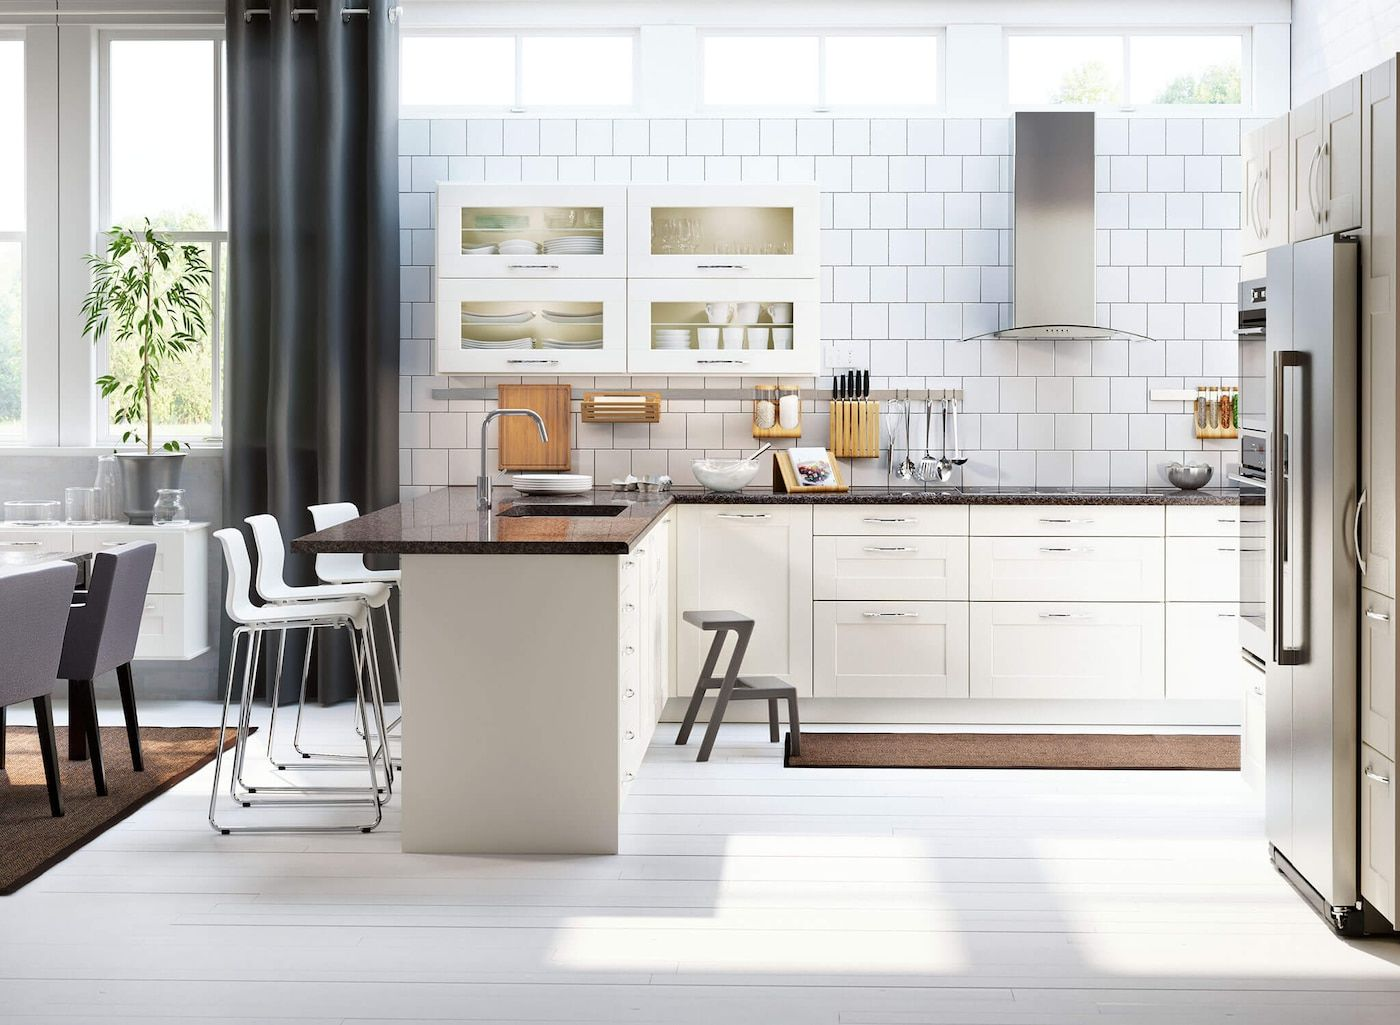 How Much Does A New Kitchen Cost To Fit Out In 2020 Happy Diy Home Cost Of Kitchen Cabinets Kitchen Cost Refacing Kitchen Cabinets Cost